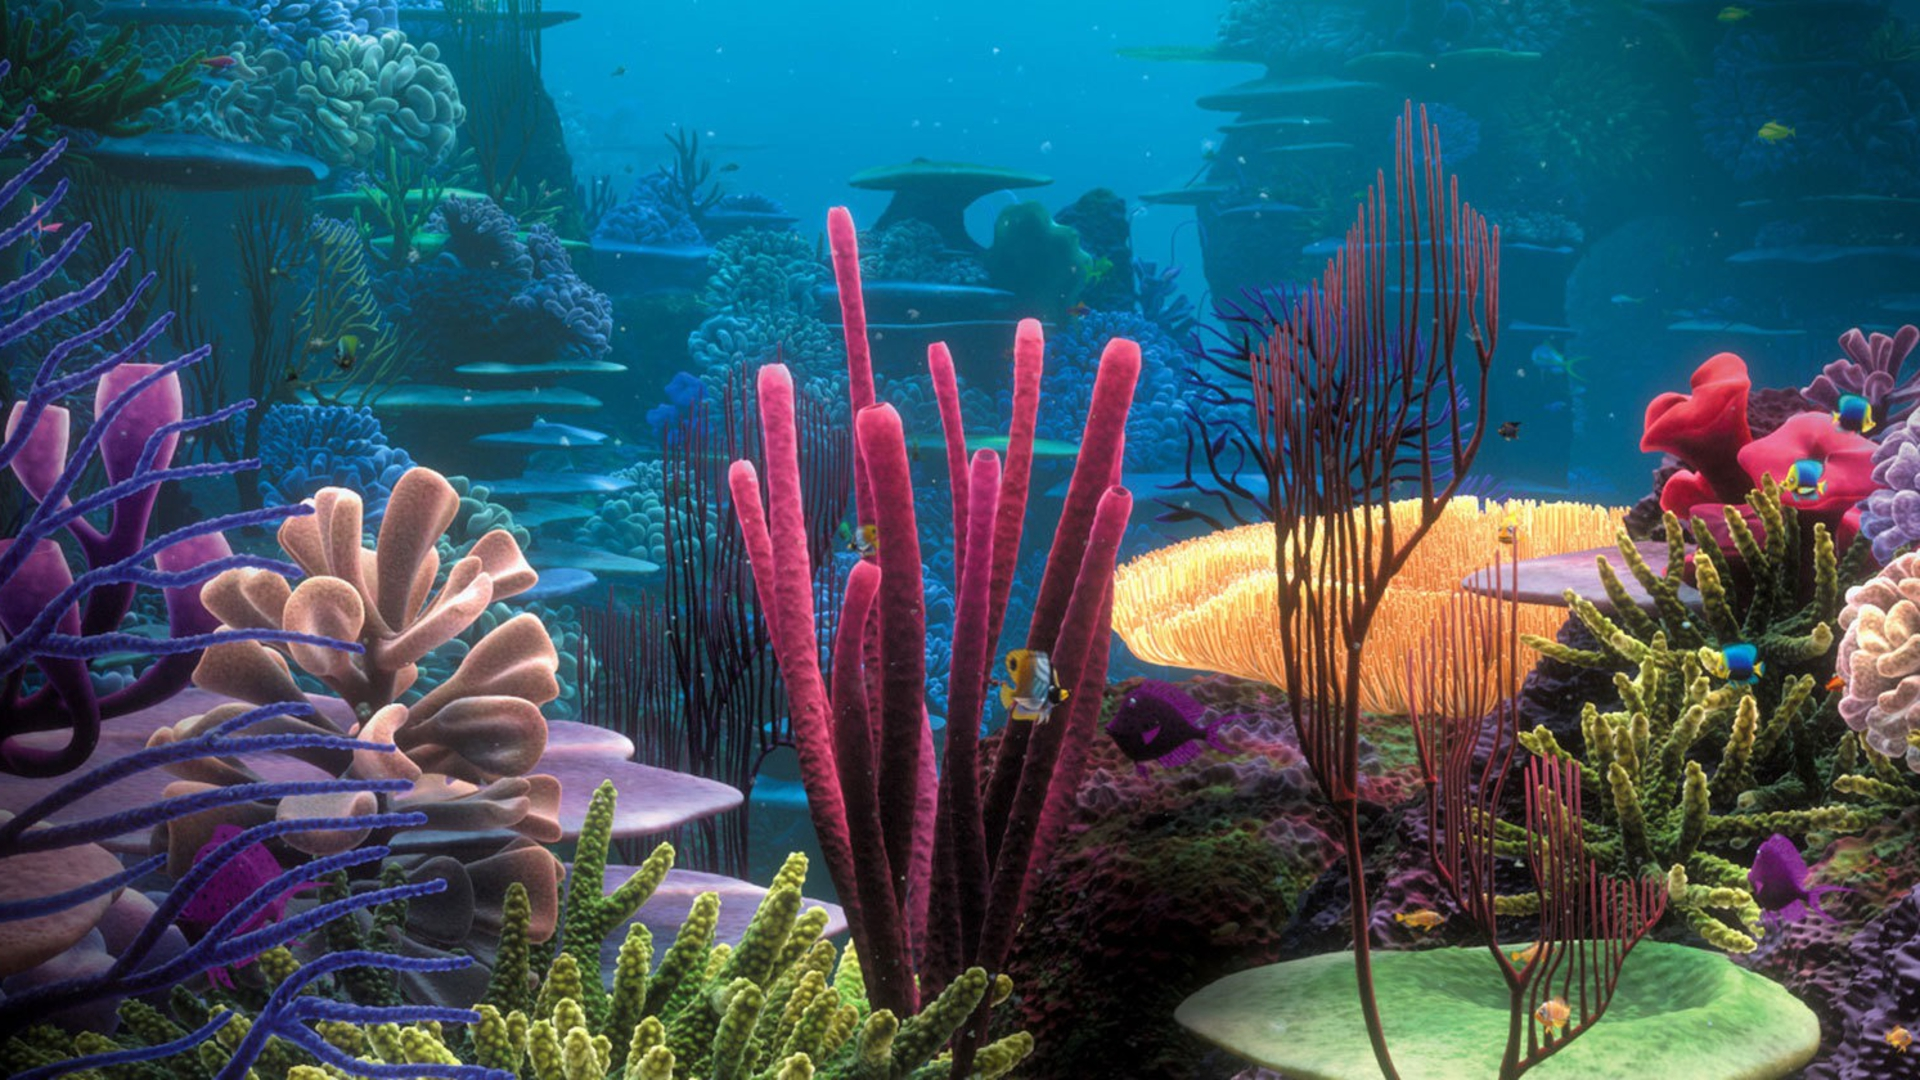 Landscapers Wallpapers - Page 3 Lifeincoralreef297